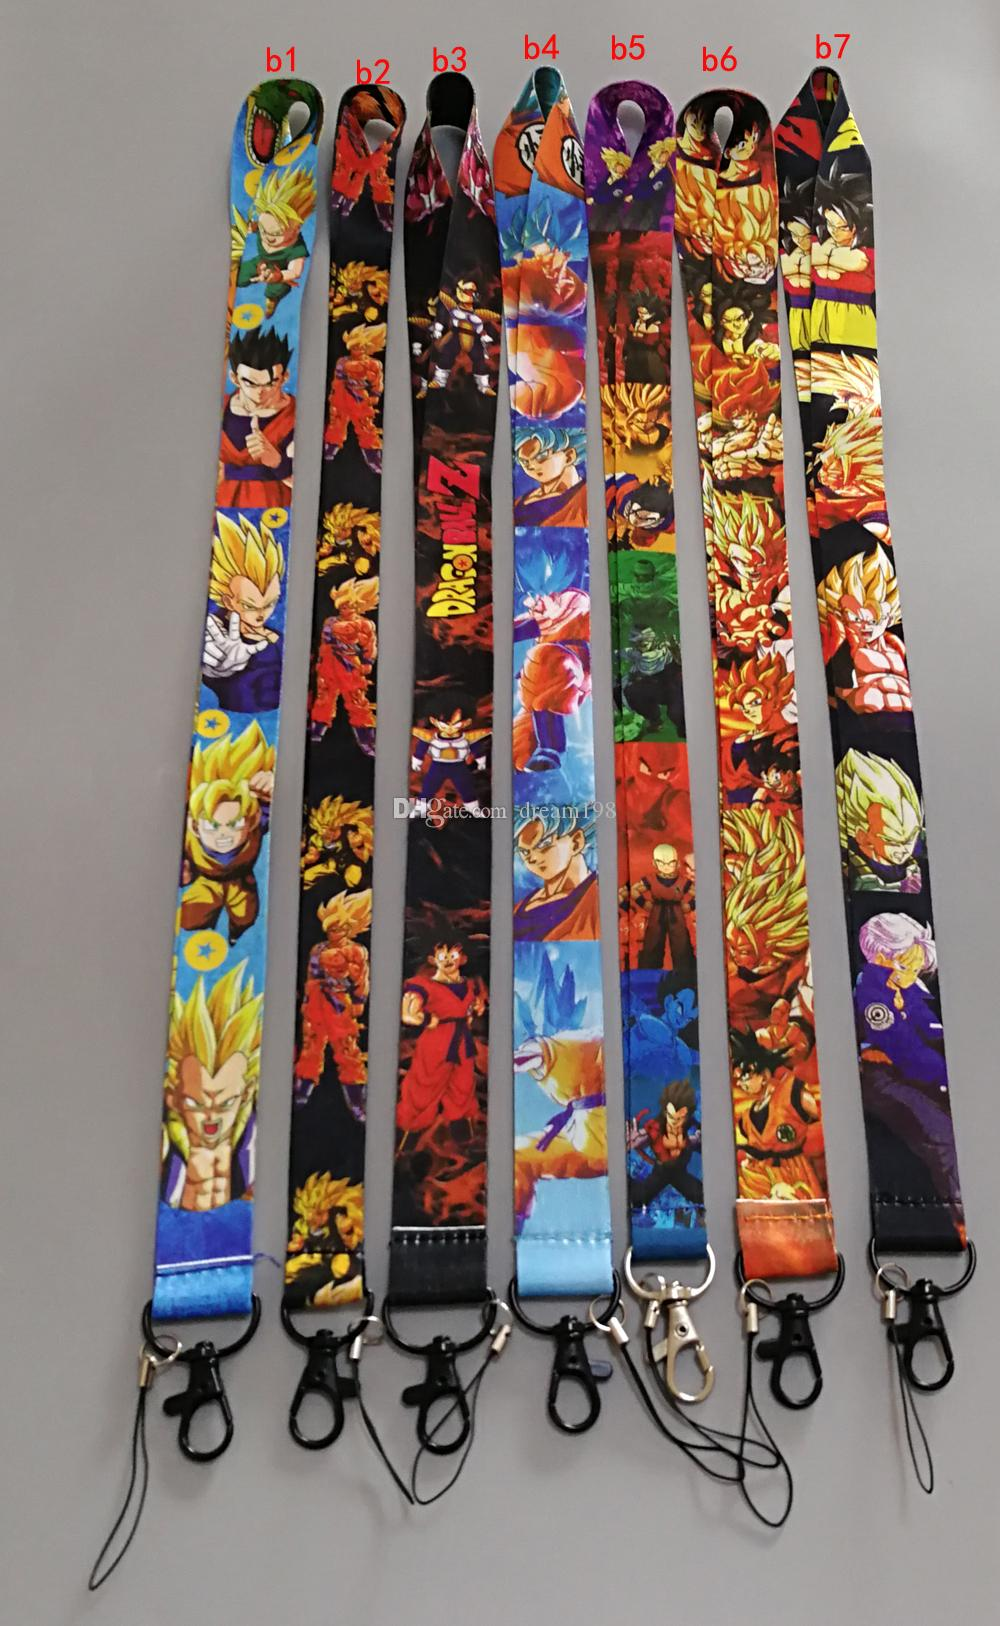 New Style Mixed One Piece Naruto Lanyard For Cell Phone Lanyards ... 75f4ca143